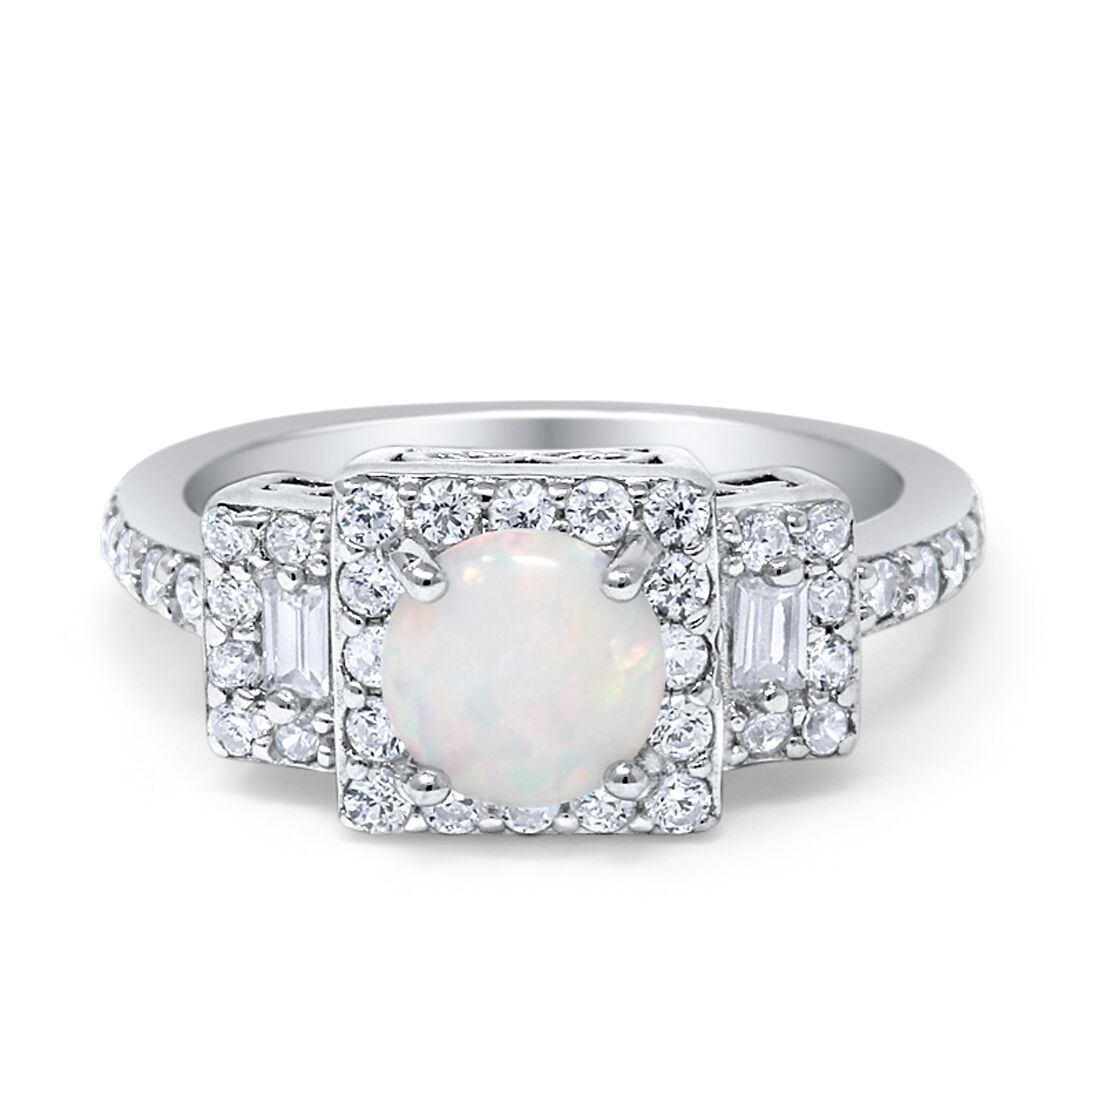 Halo Wedding Engagement Ring Round Created Opal Baguette Round Cubic Zirconia 925 Sterling Silver Choose Color